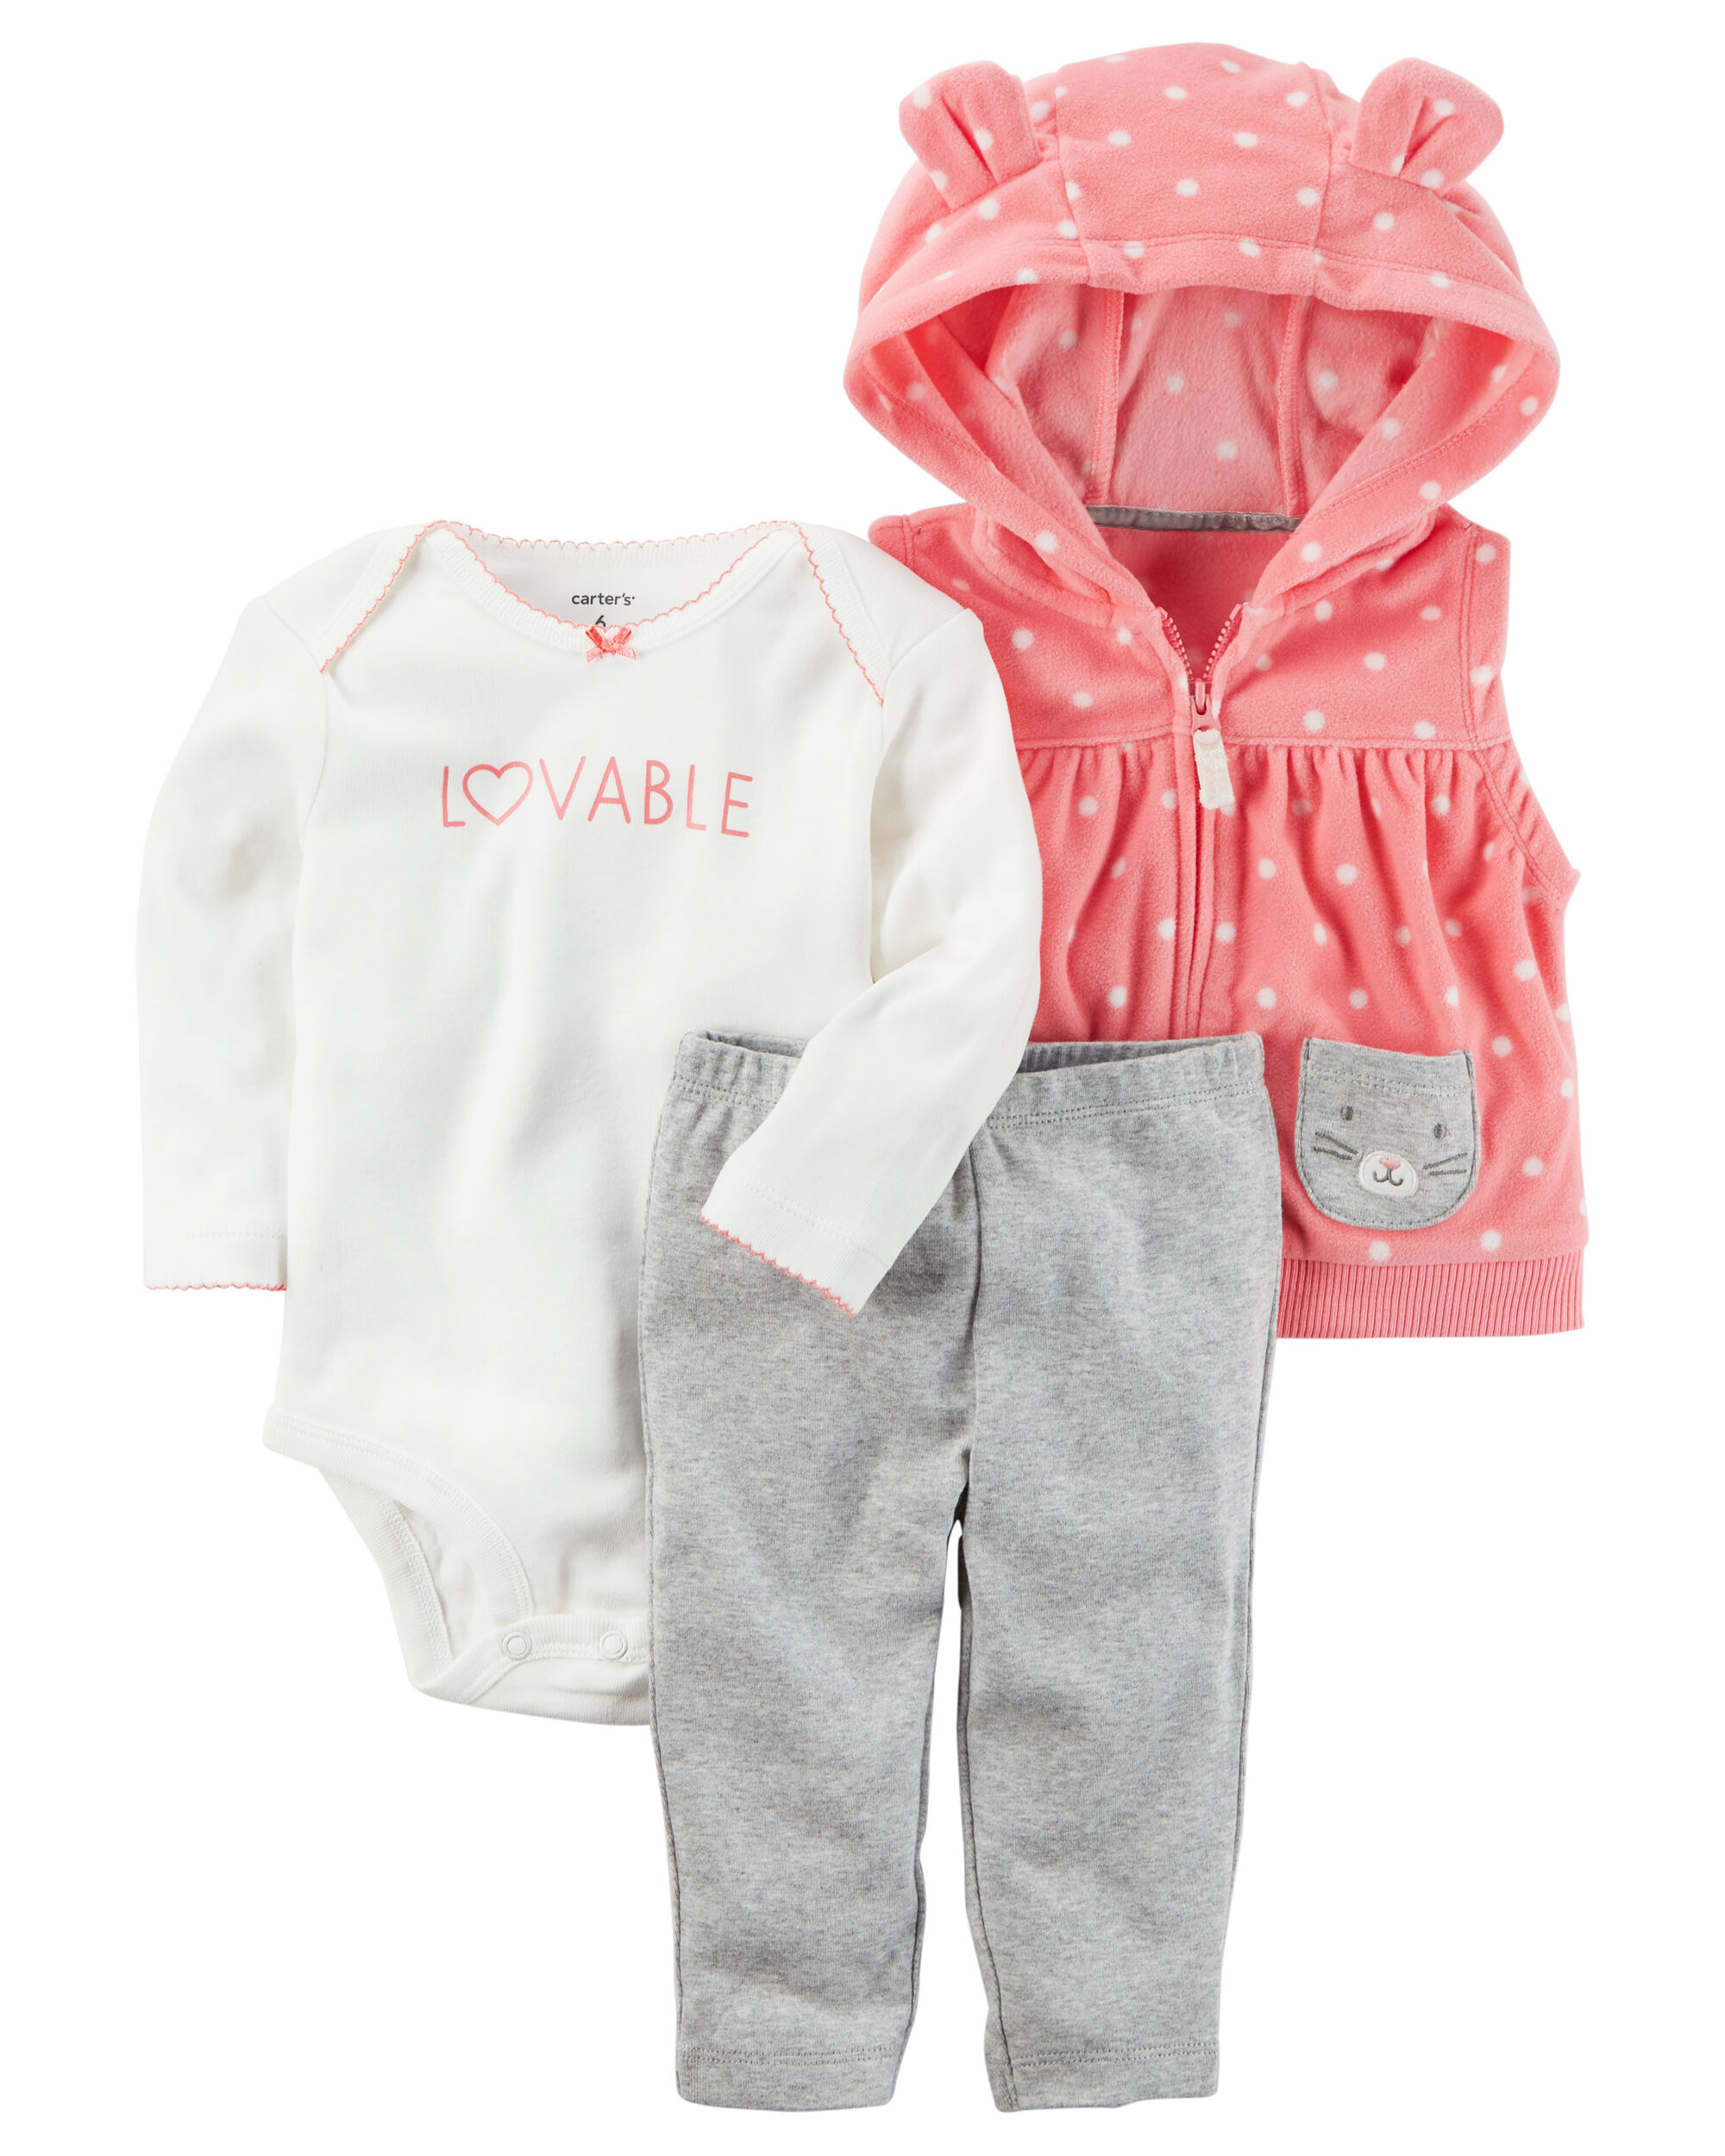 3 Piece Little Vest Set Carters Com